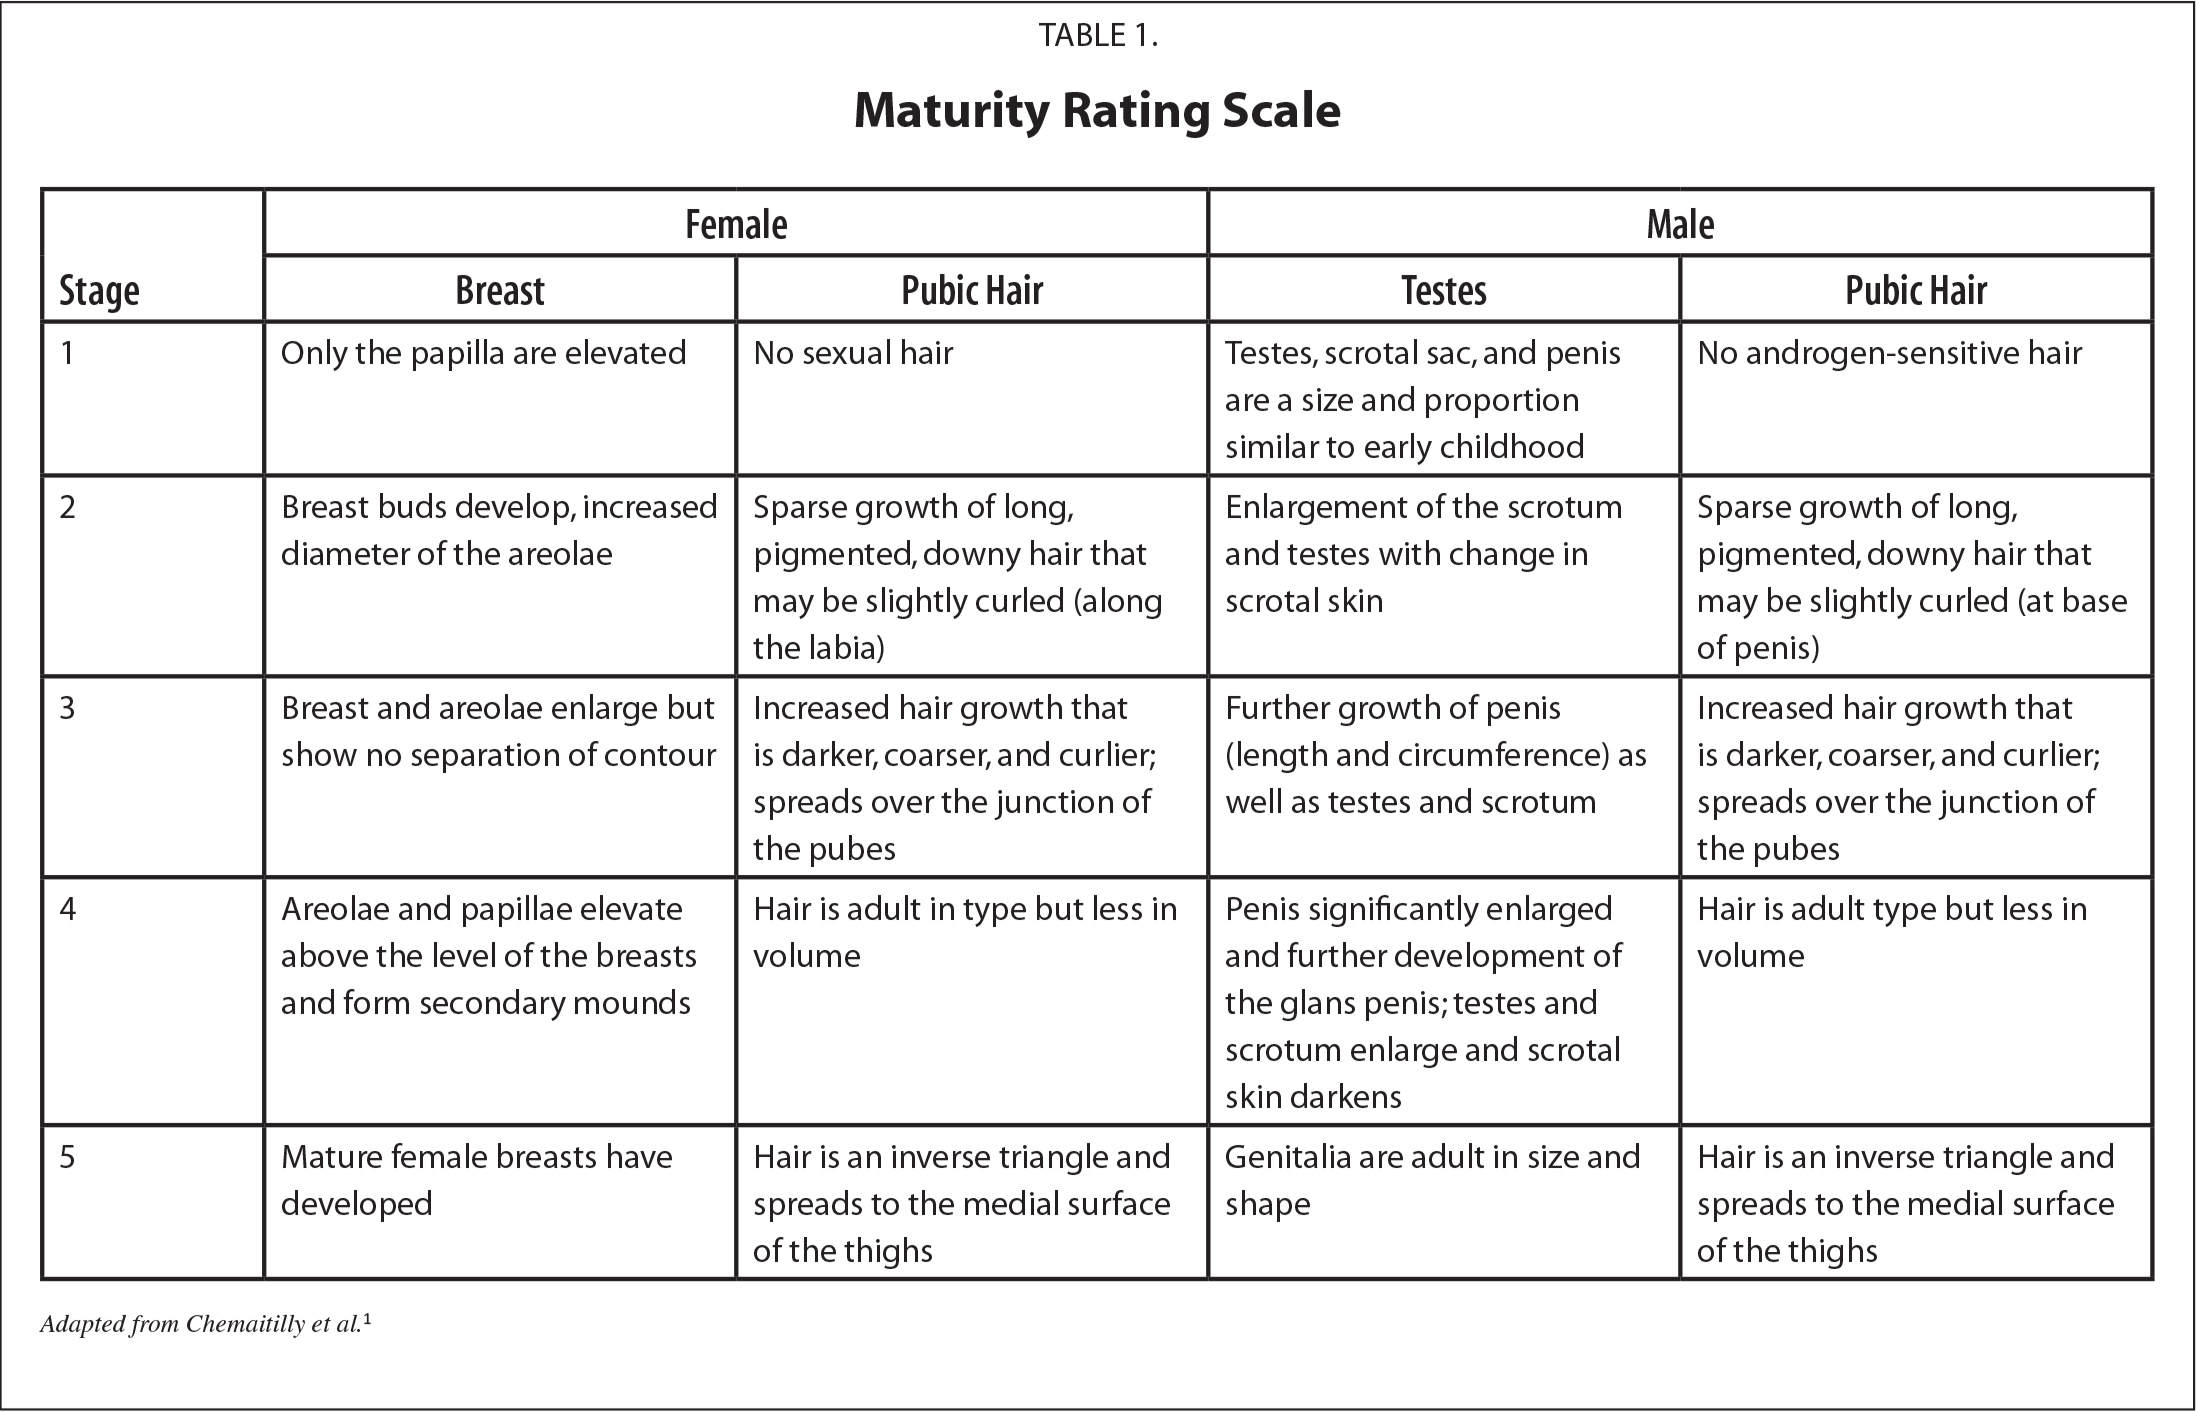 Maturity Rating Scale